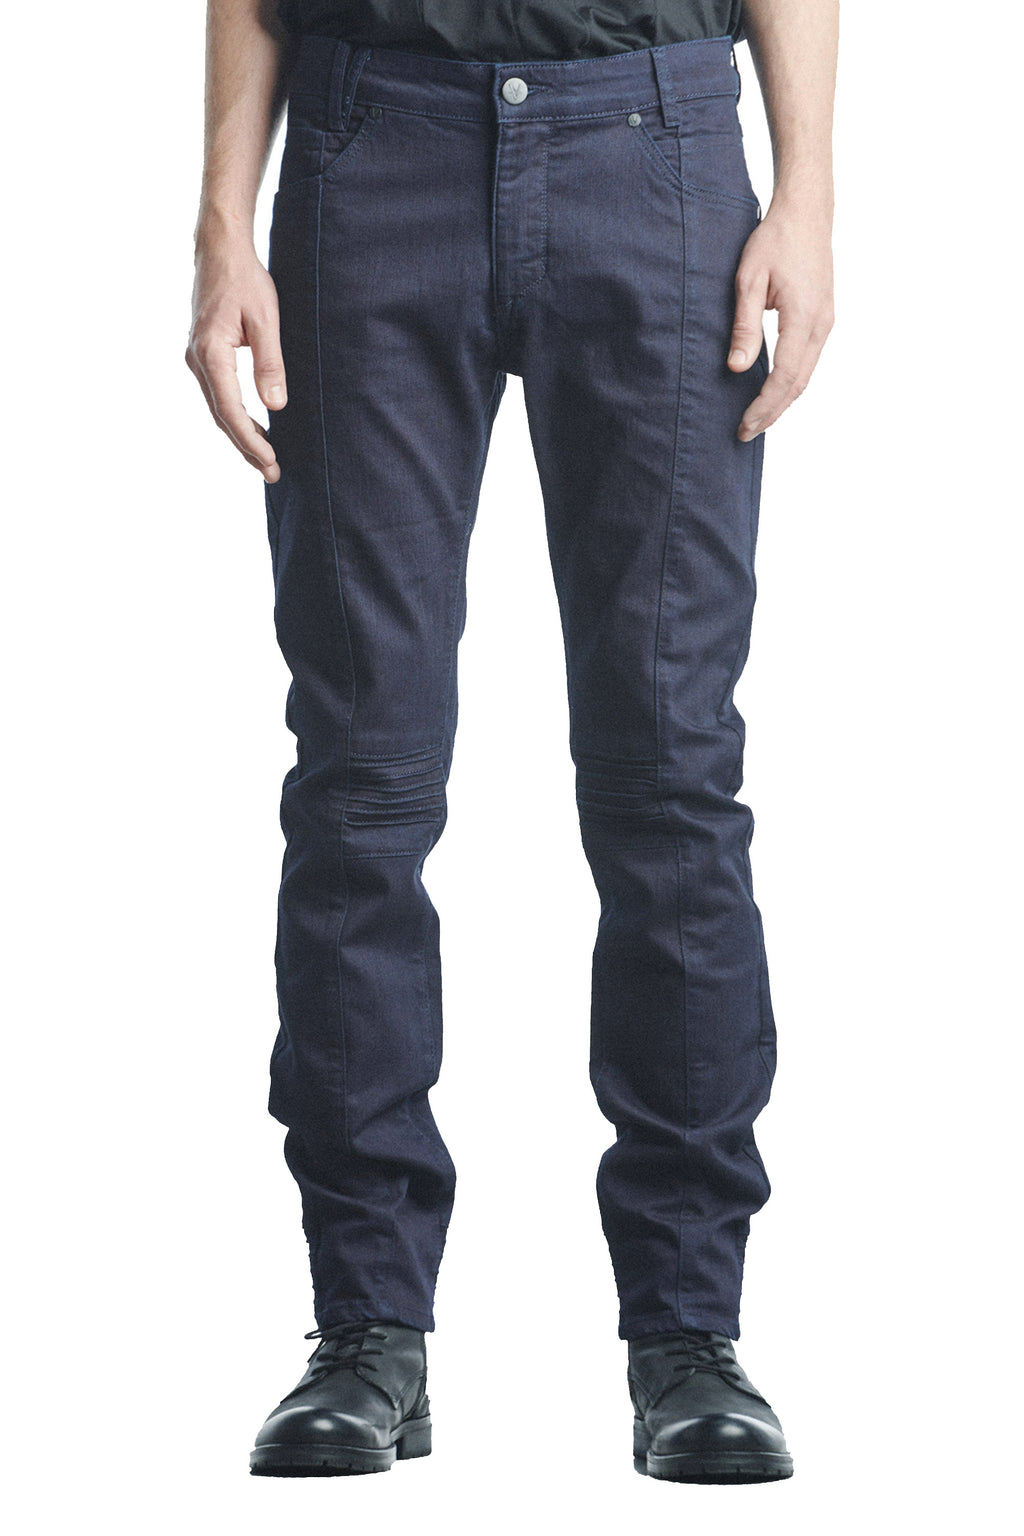 Second Choice - Francis Skinny Jeans Blue